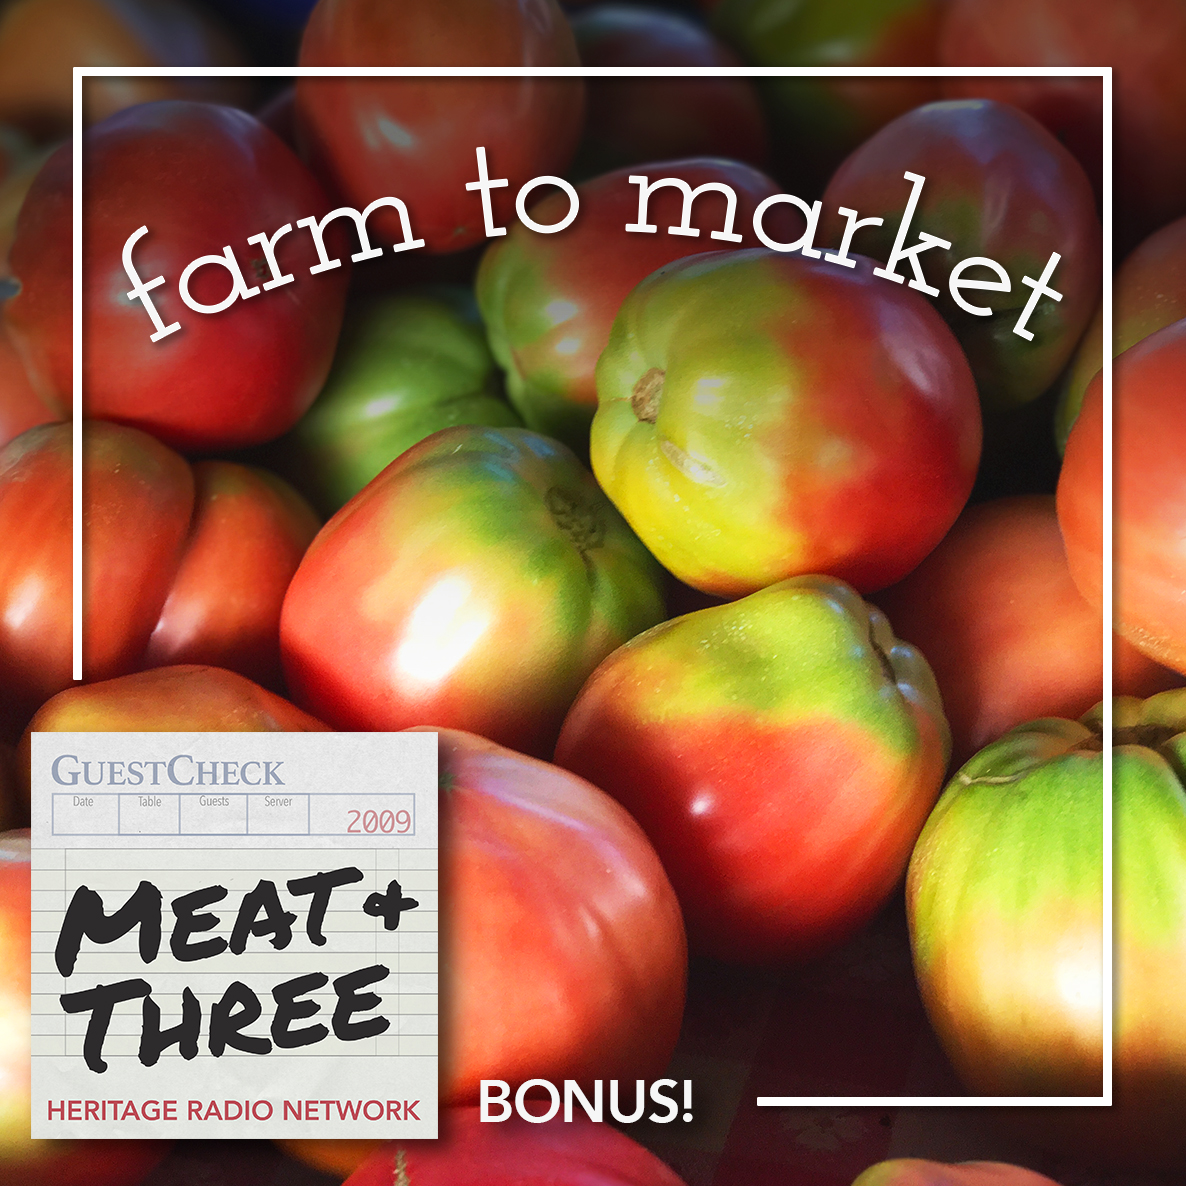 Bonus Farm to Market